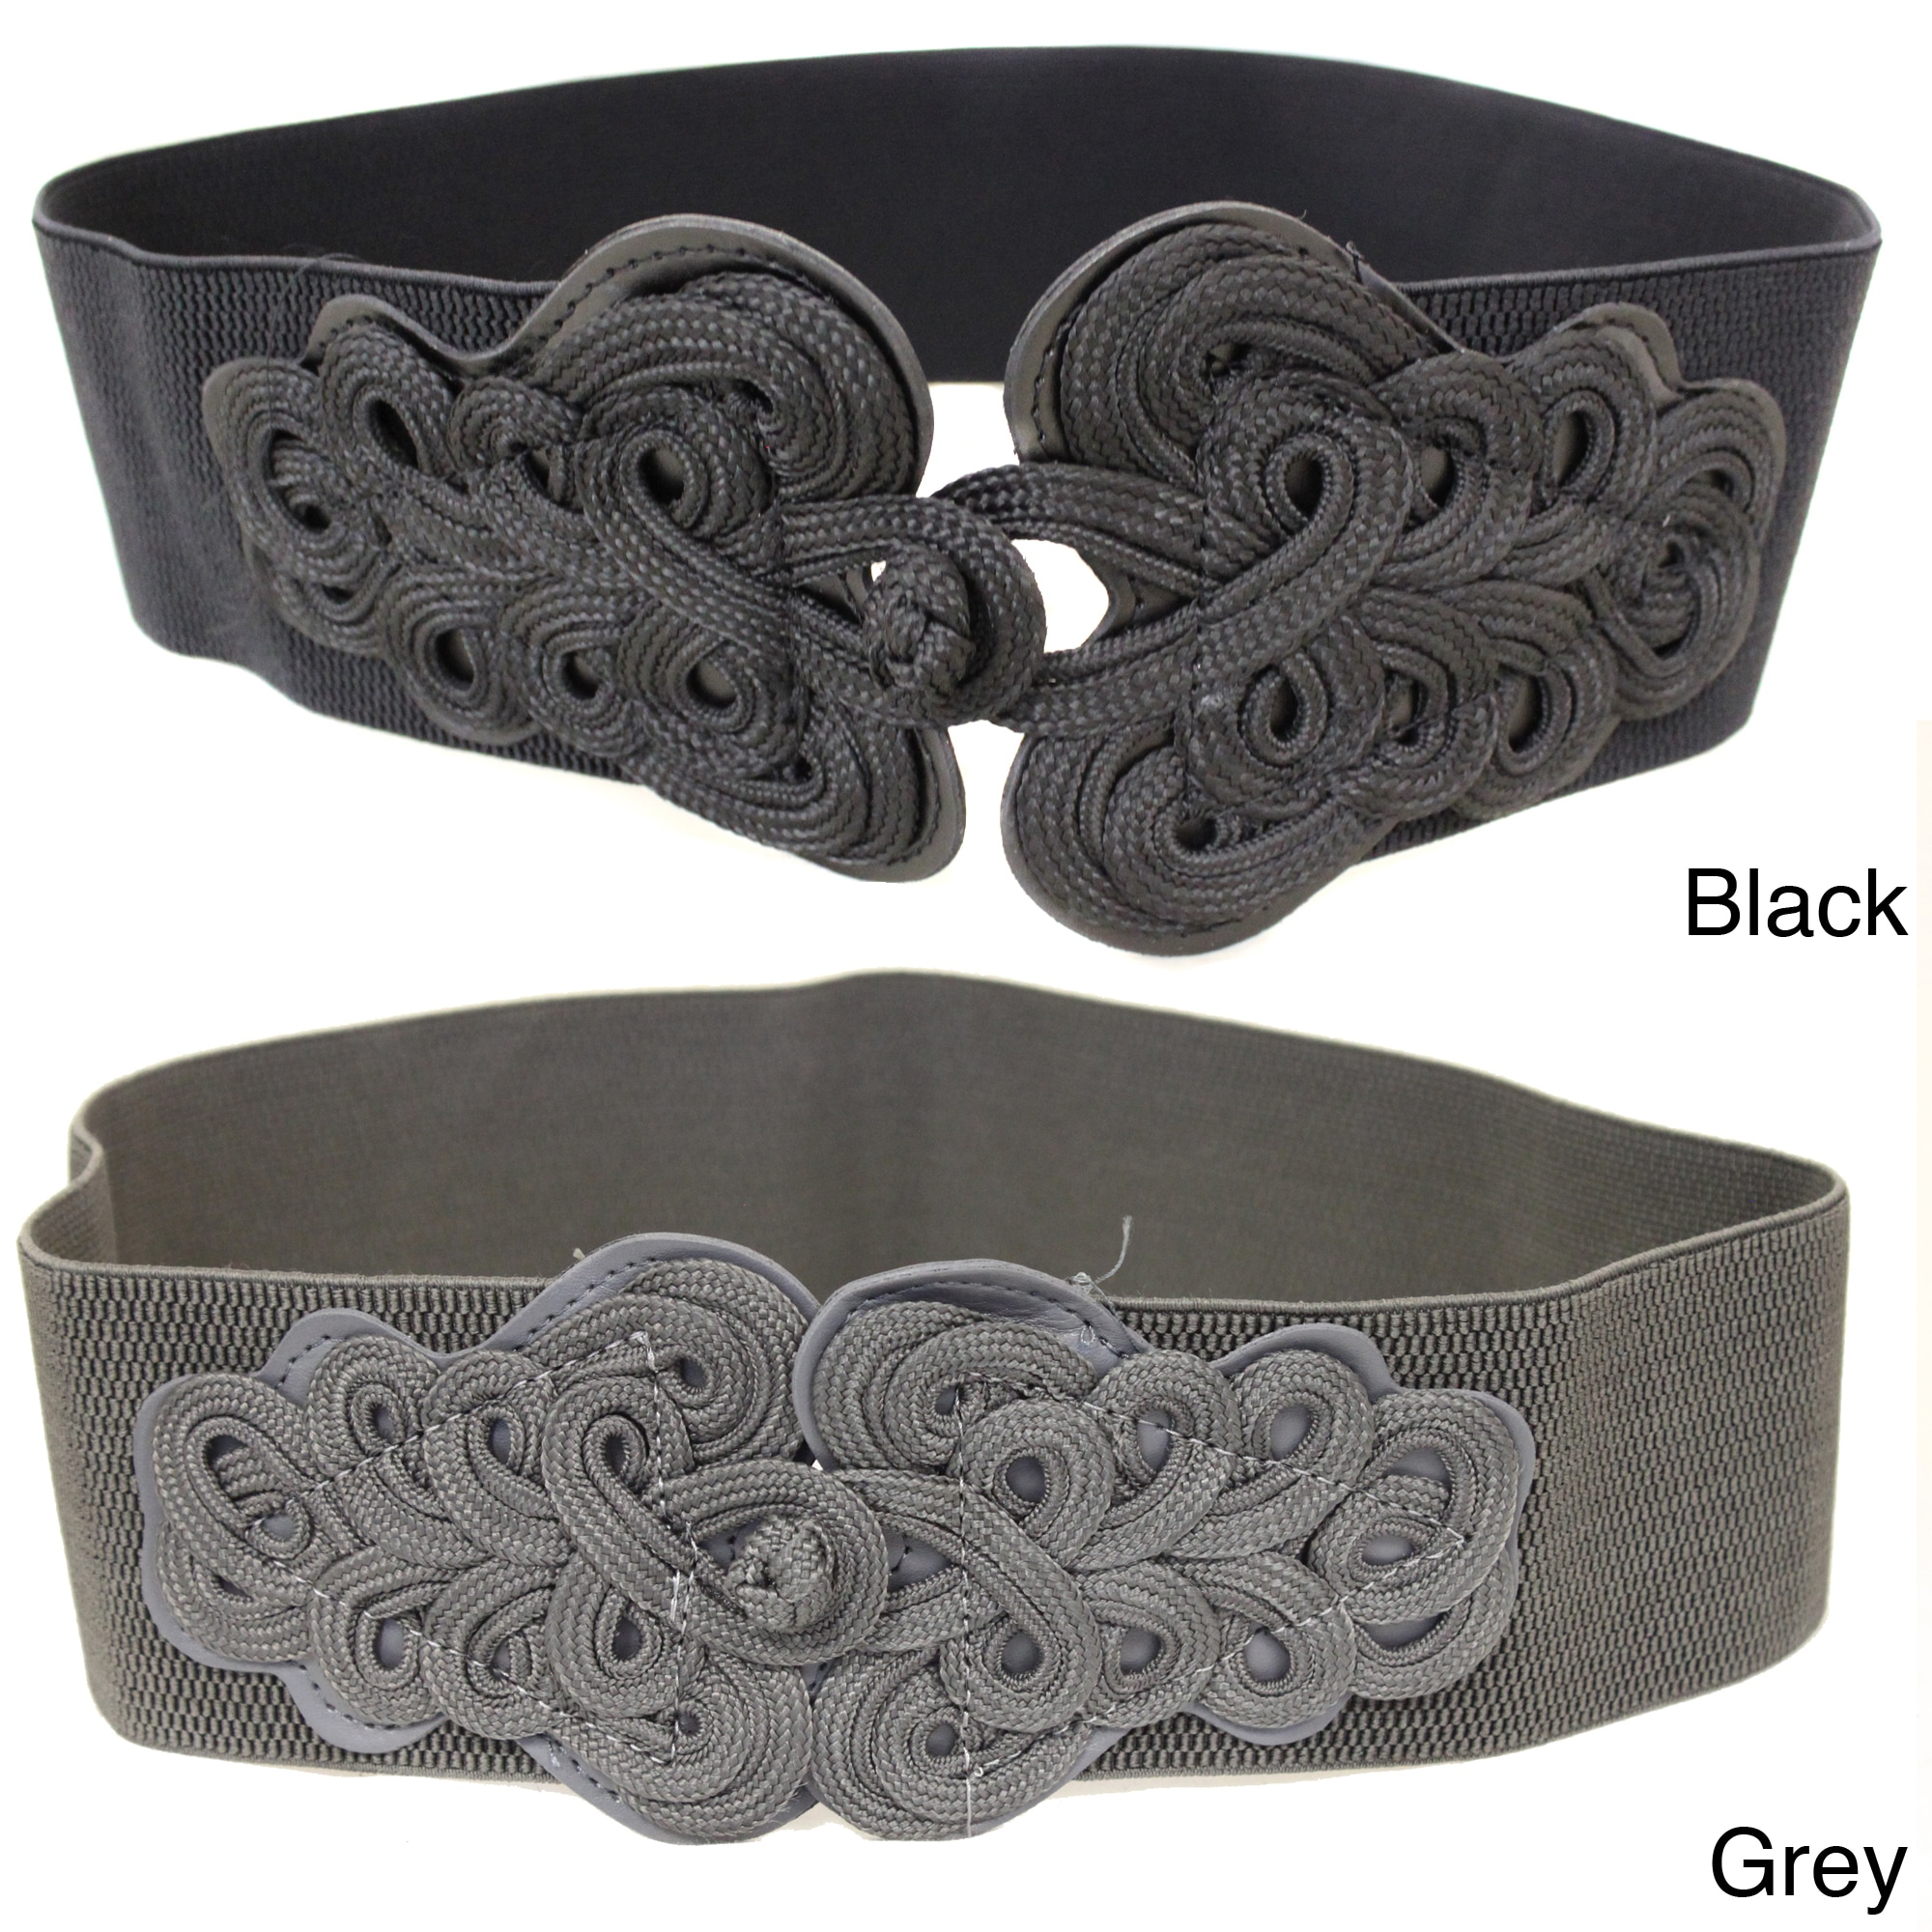 Women's Scrolling Buckle Contoured Elastic High Waist Stretch Belt at Sears.com